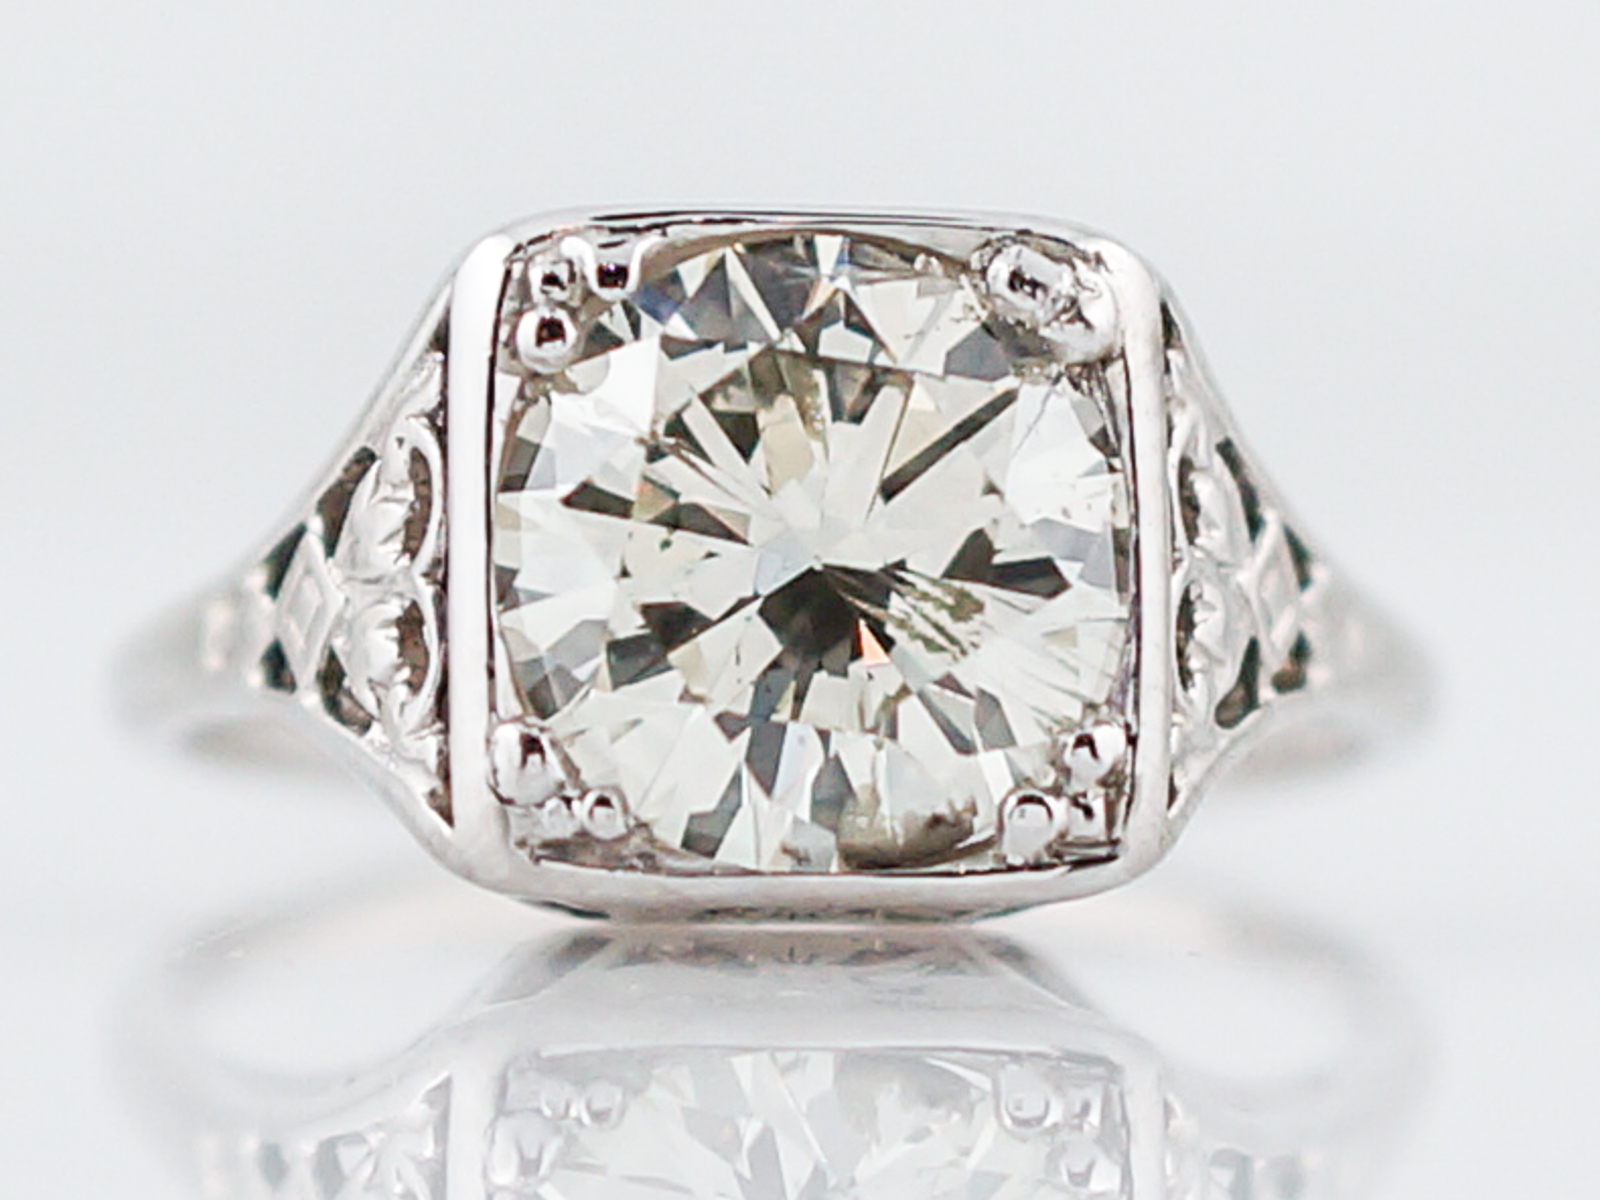 Antique Engagement Ring Art Deco 1.84 Round Brilliant Cut Diamond in 14k White Gold-1